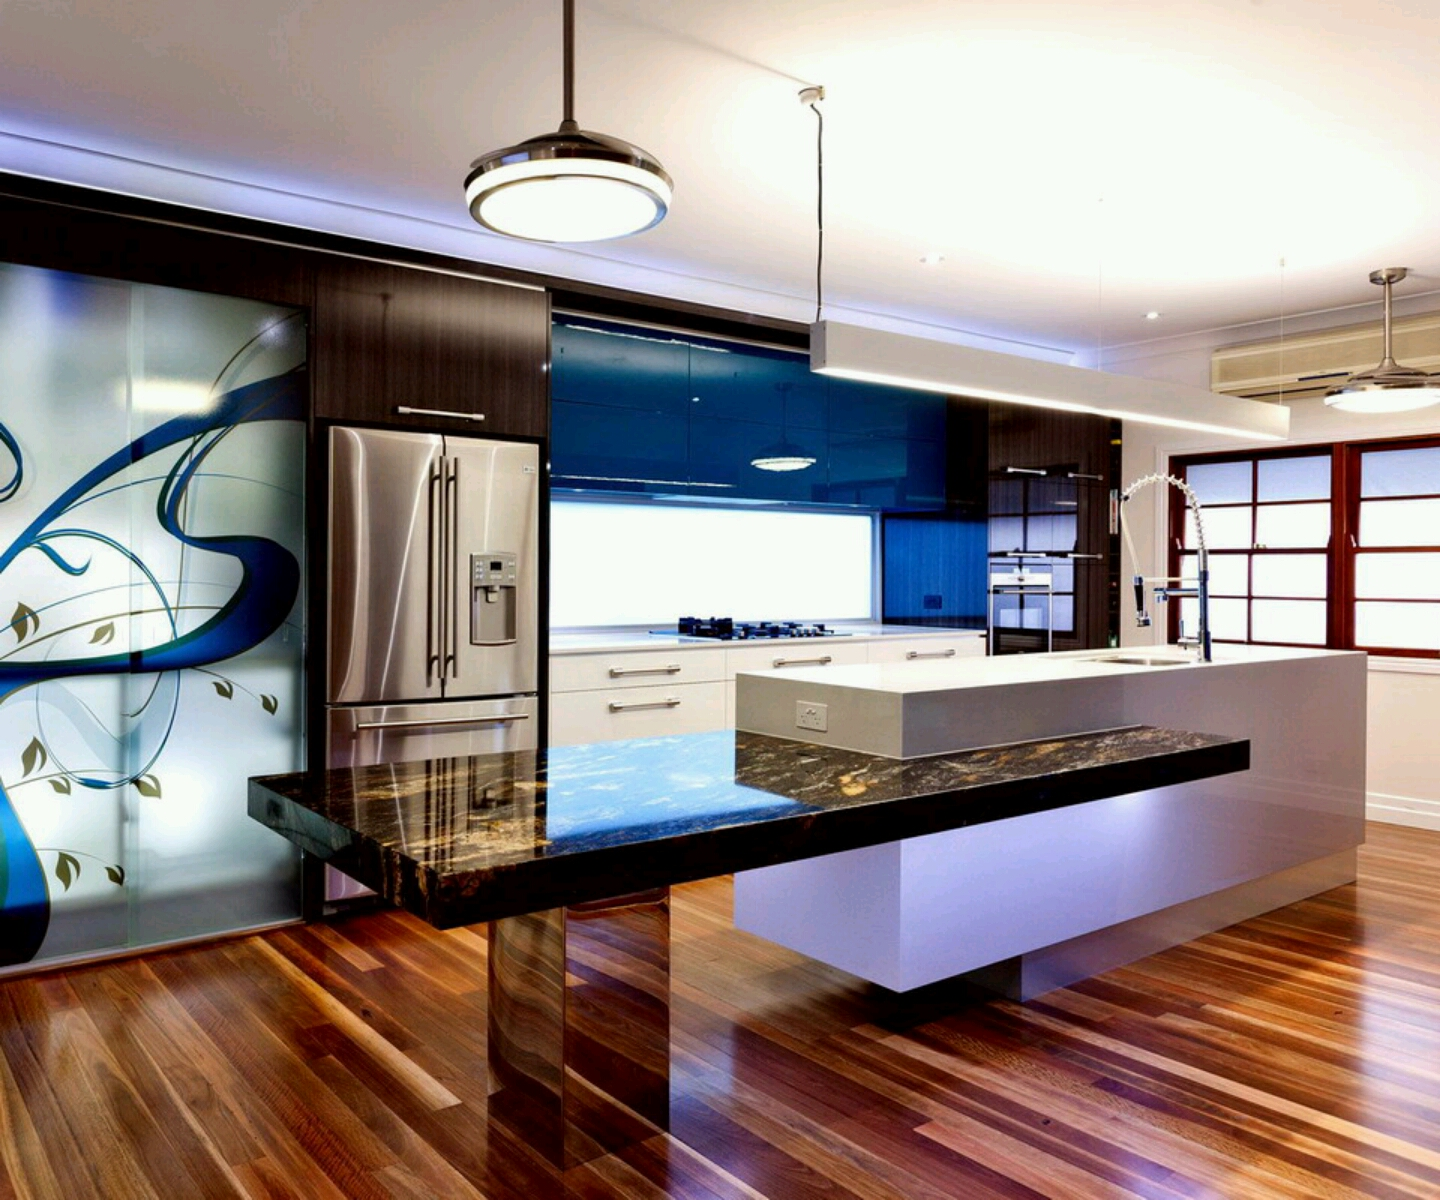 Ultra modern kitchen designs ideas new home designs for Kitchen style ideas